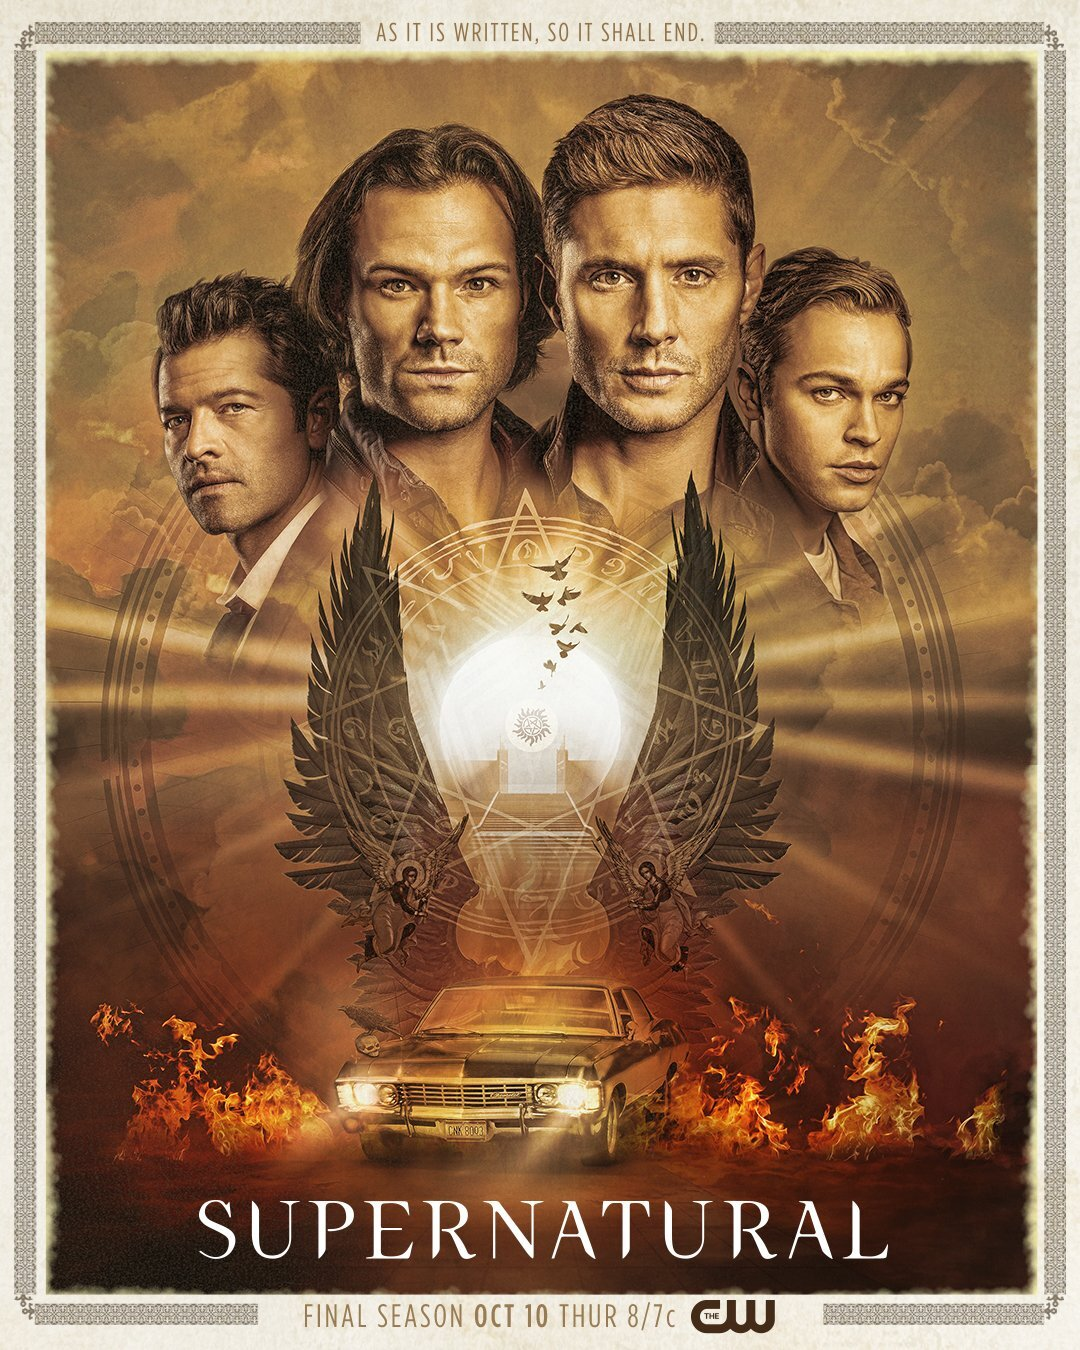 Supernatural… The final season, begins Oct.10 on The CW…